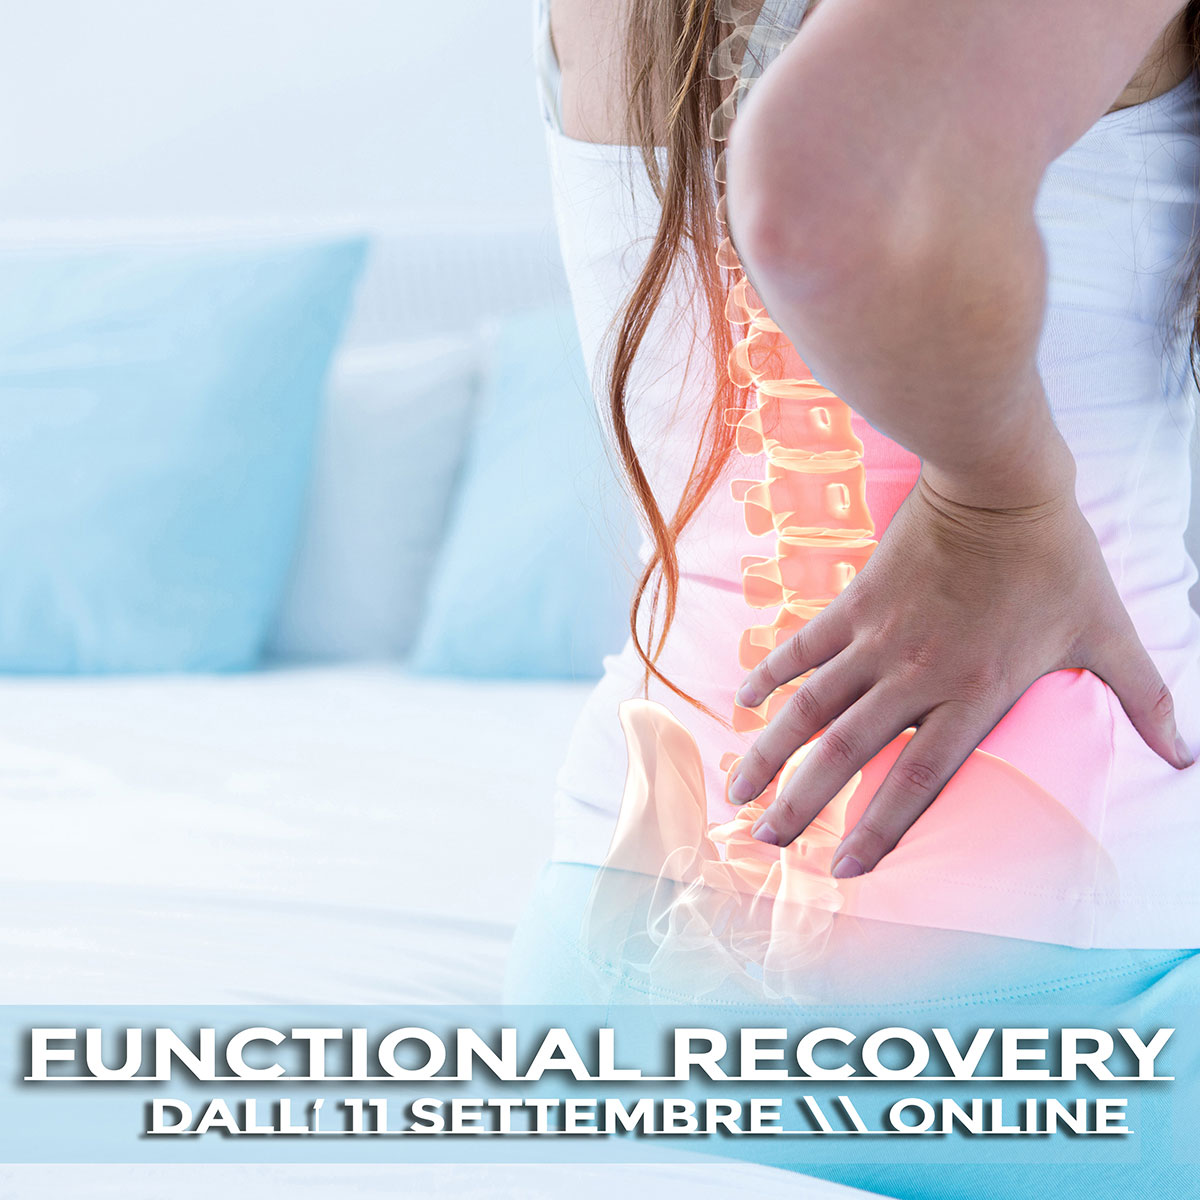 FUNCTIONAL RECOVERY